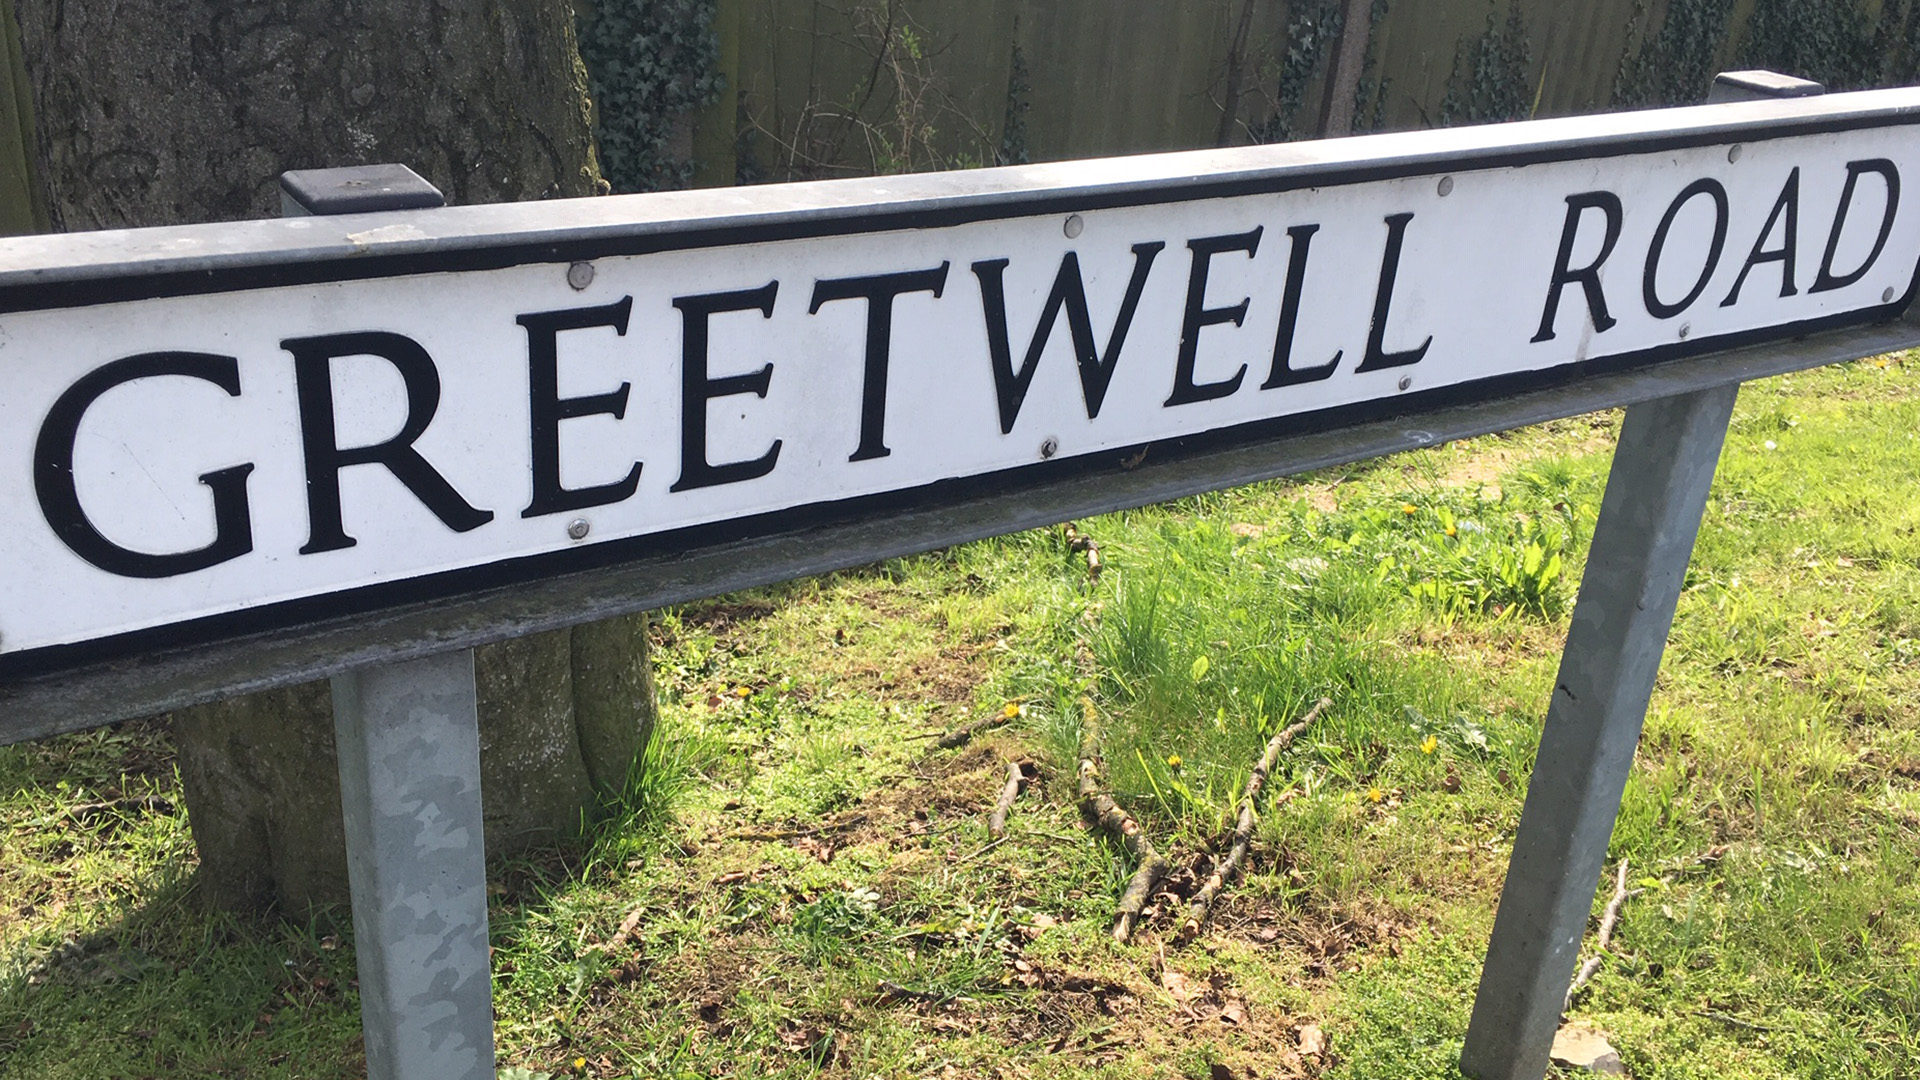 Greetwell Road sign